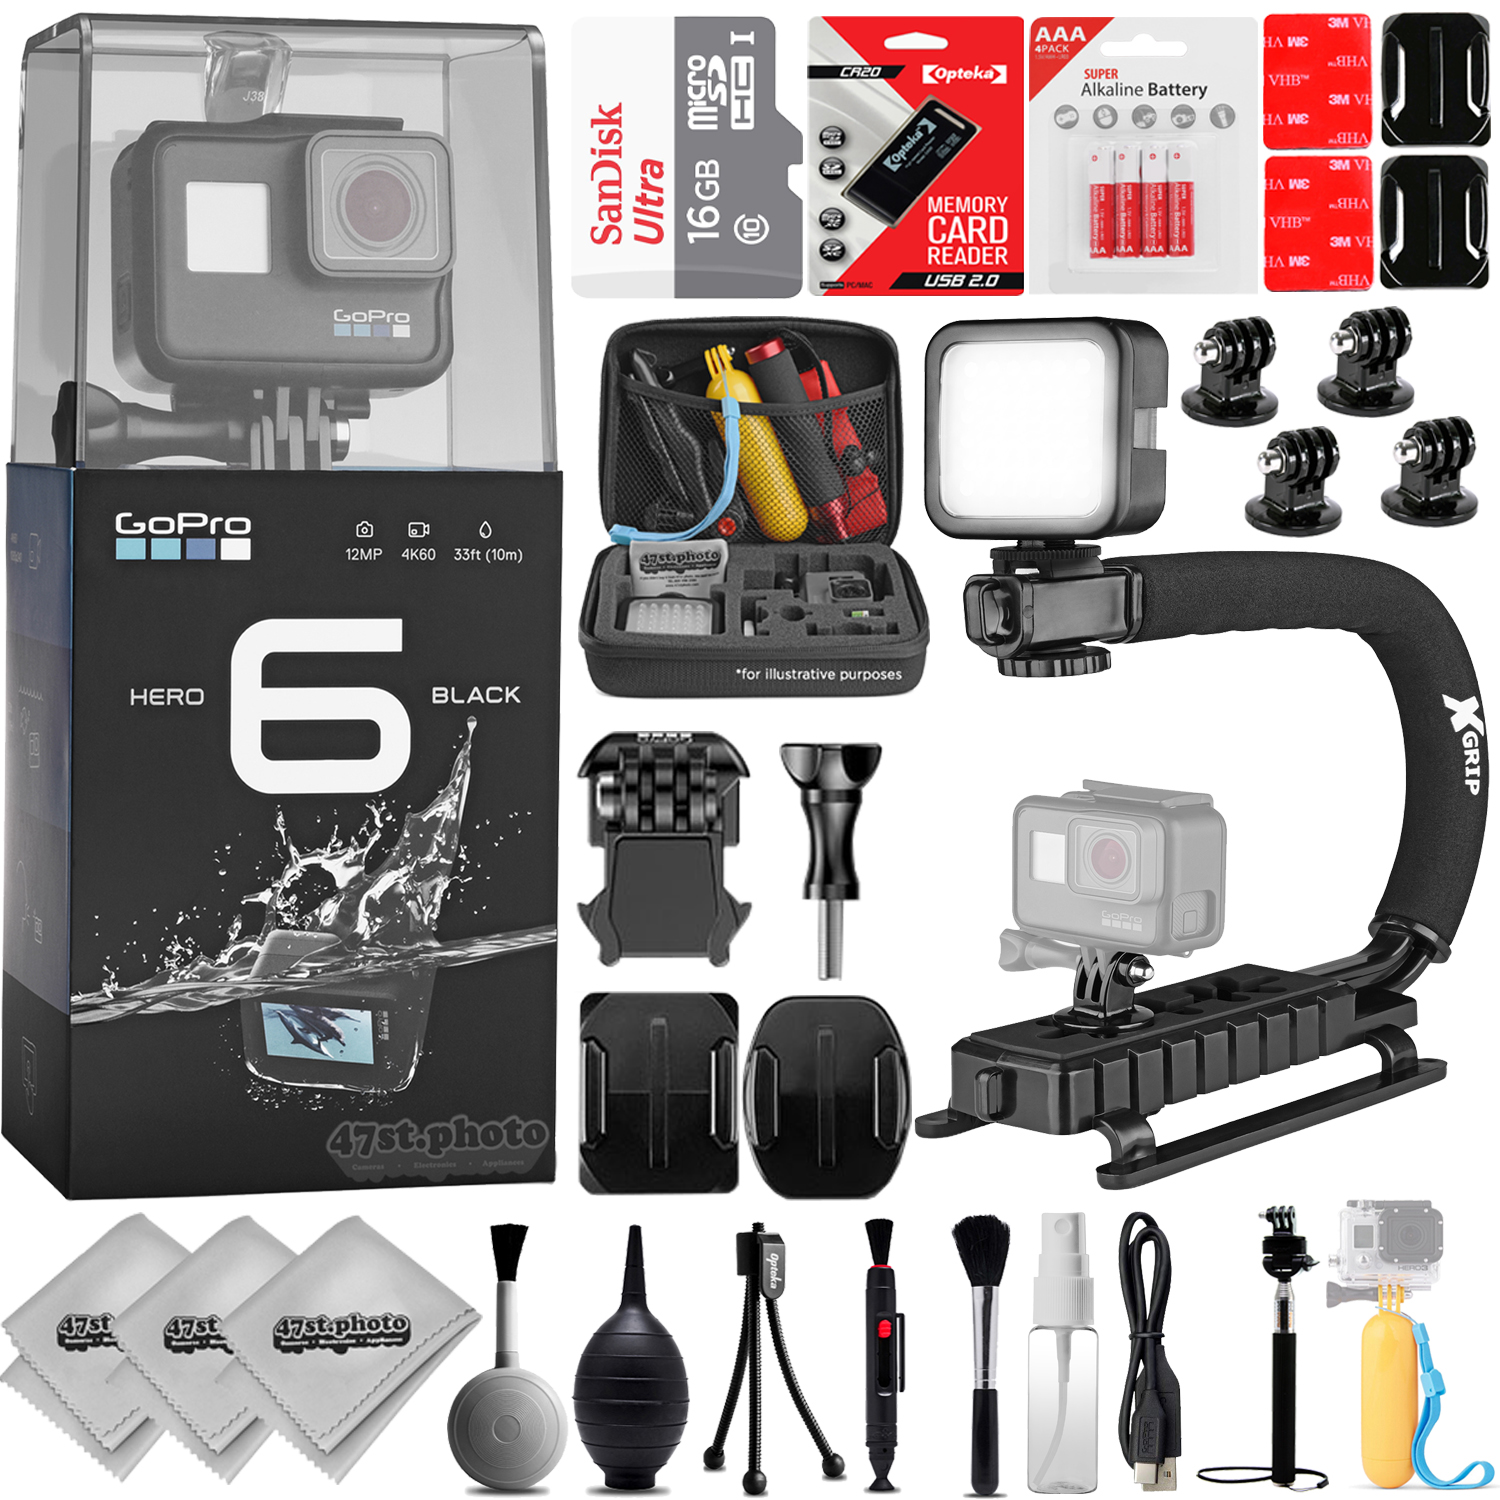 GoPro HERO6 Black 4K 12MP Digital Camcorder w/ 16GB - 23PC Sports Action Bundle (16GB Micro SD, Card Reader, 4PC Curved Adhesive Mount, High Power LED Light, X-GRIP Stabilizing Handle & More)